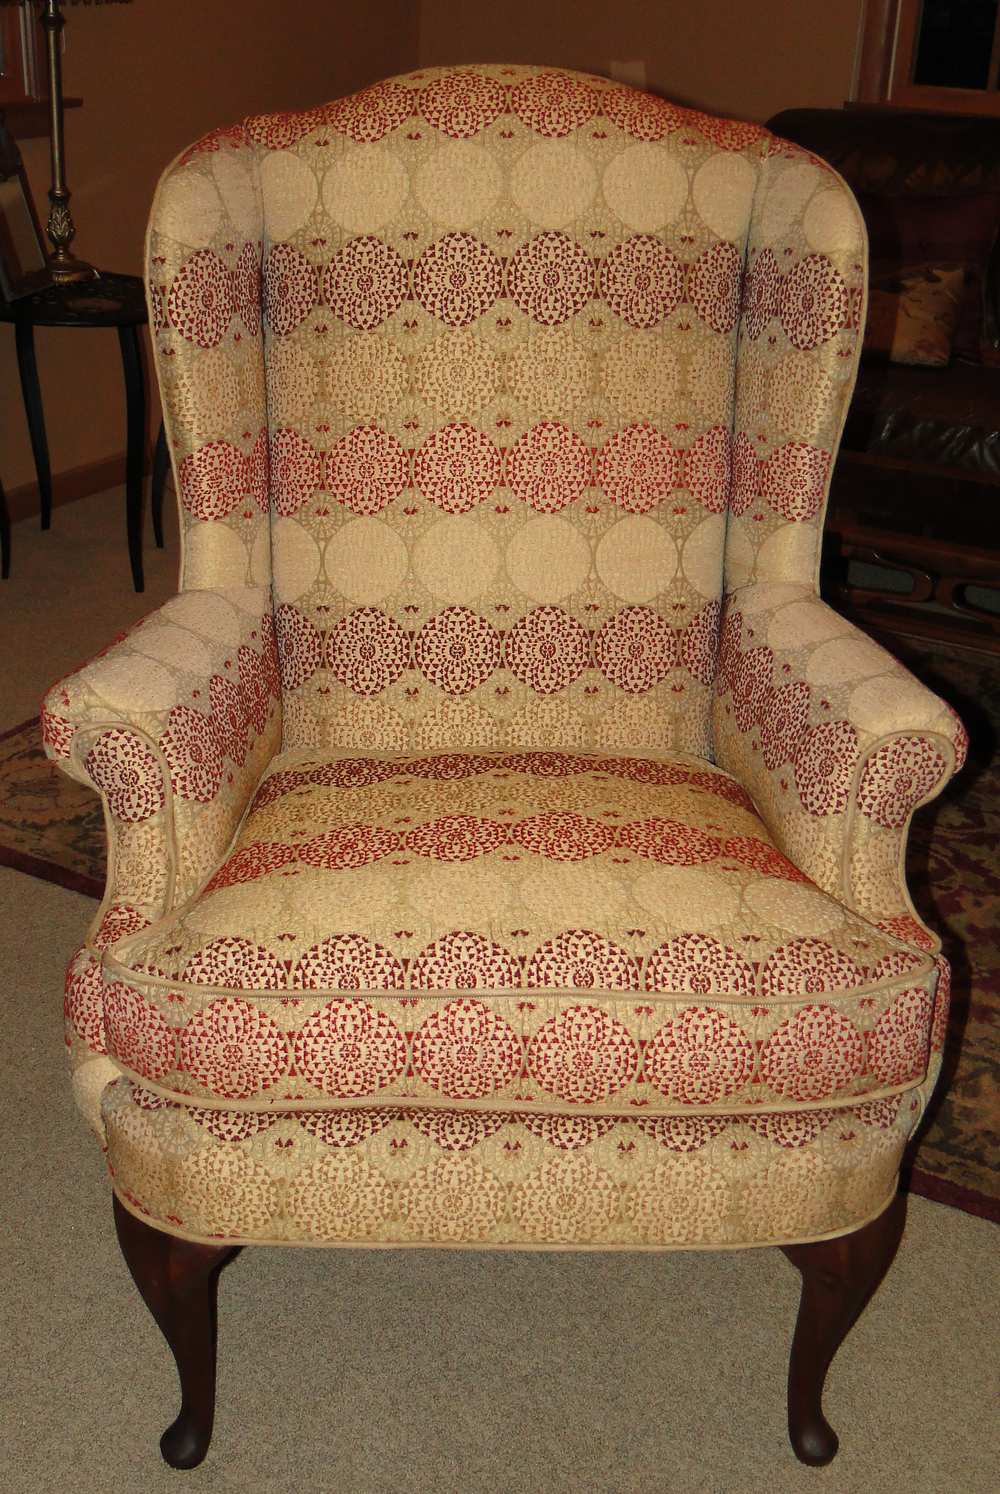 Front view of complete chair